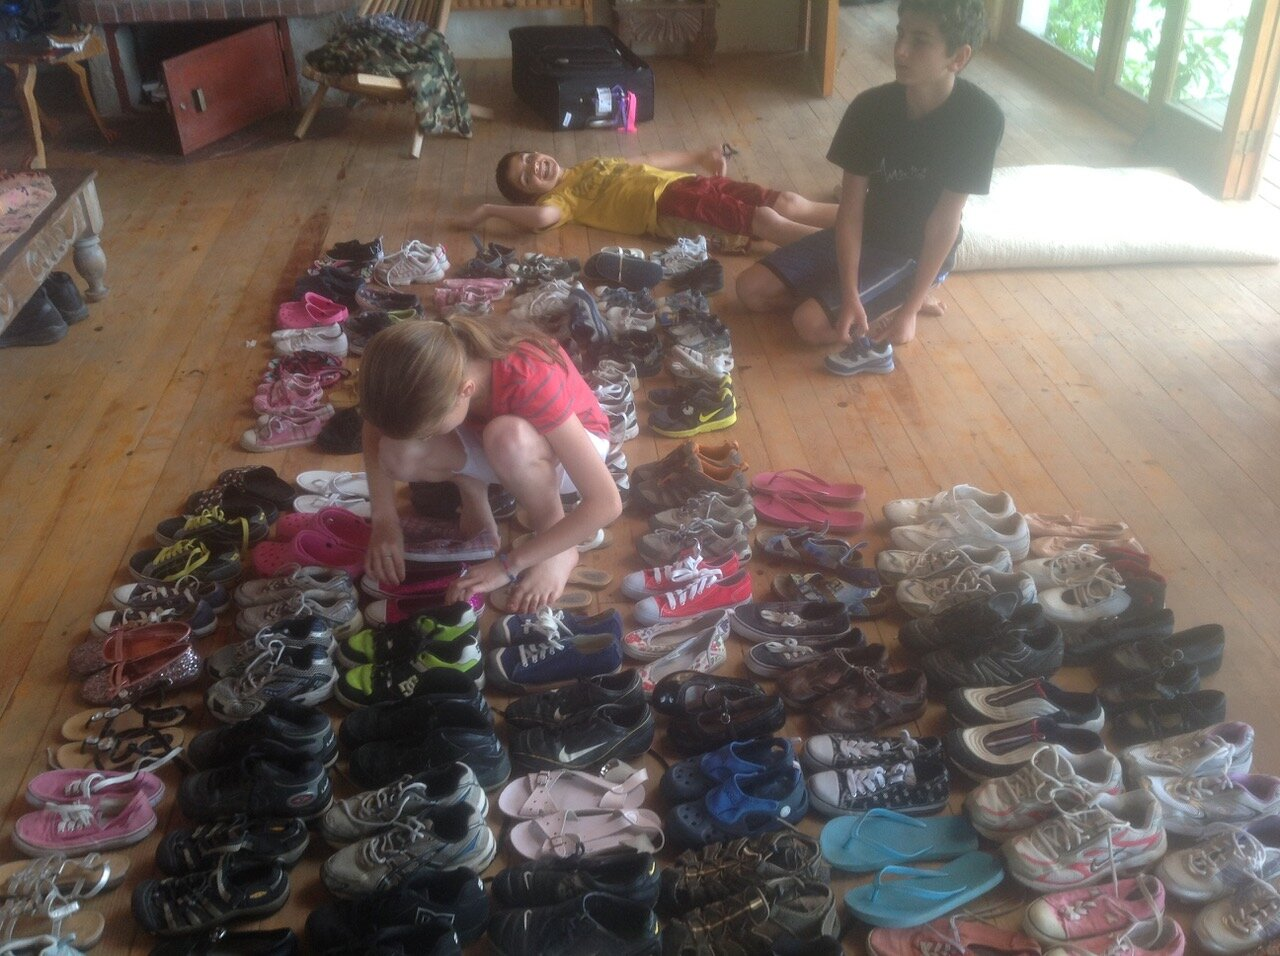 Want to save $100 on your tuition? - Donate 15 pairs of shoes in a women's size 8 or below. Your gift makes a huge impact on the community's children.